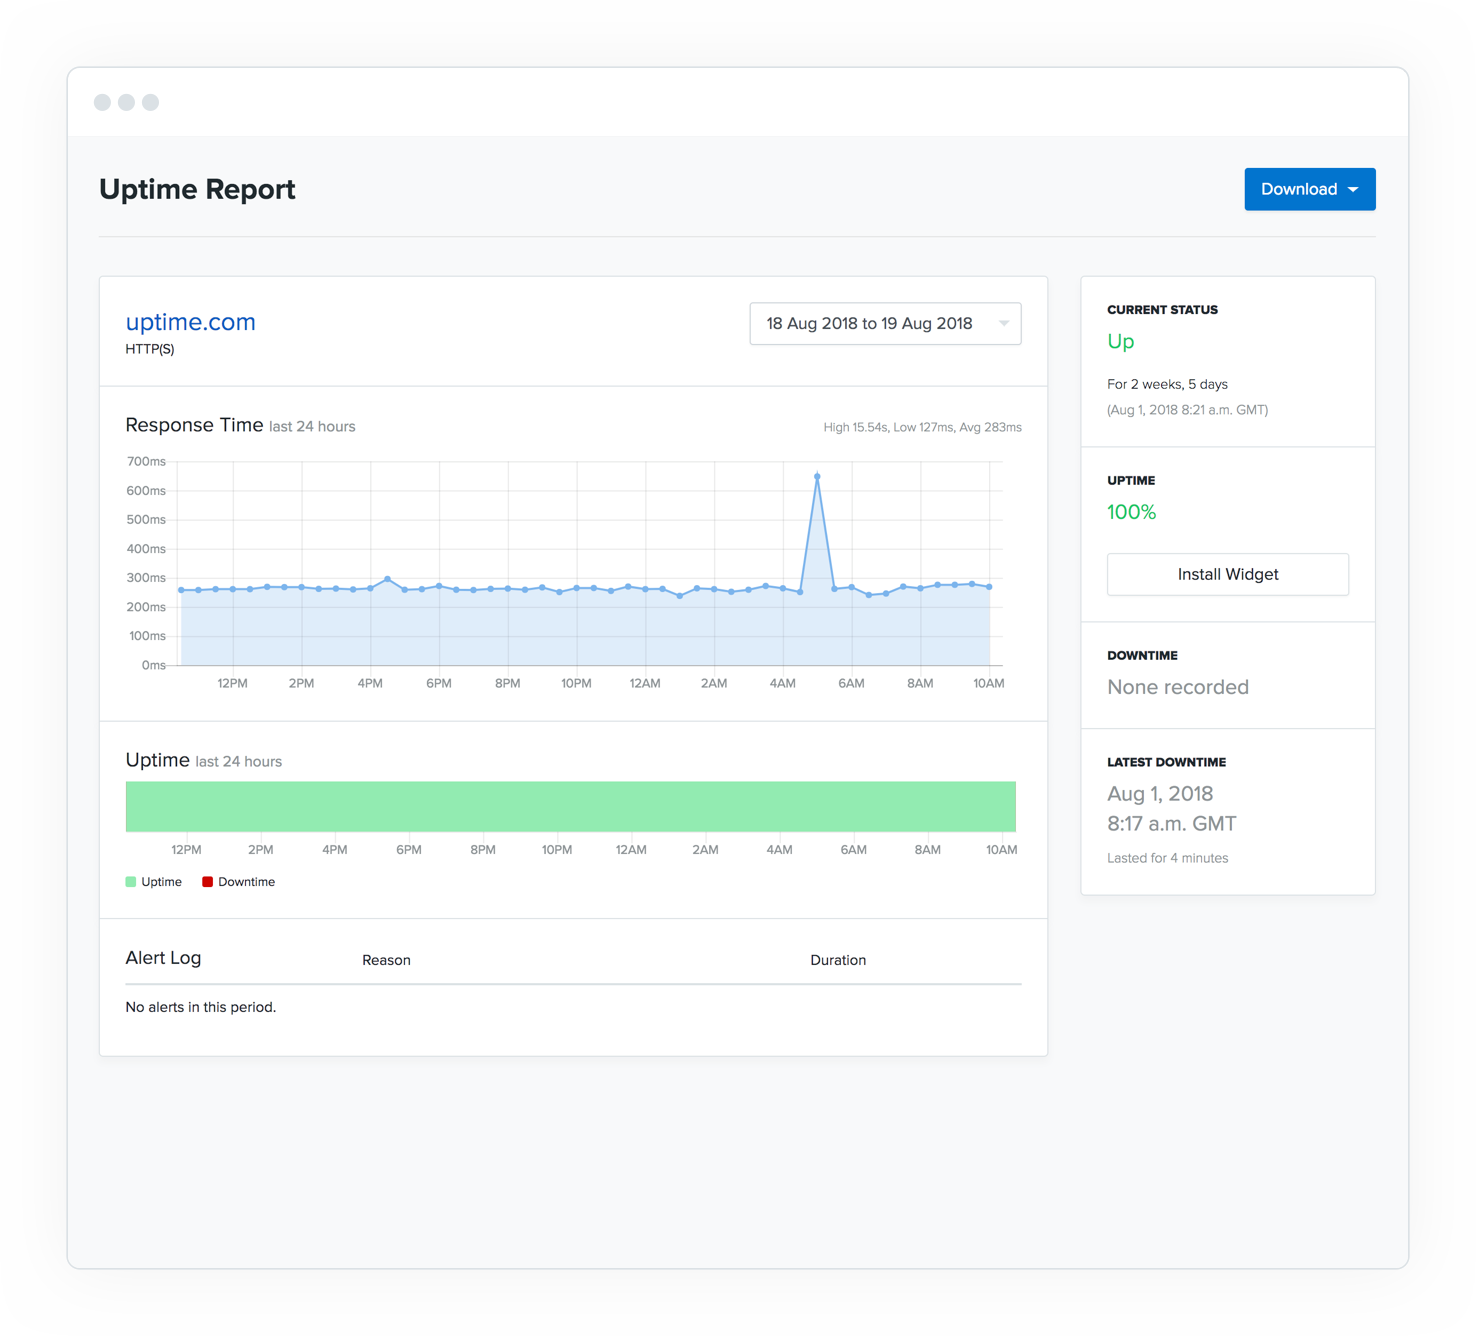 Uptime Cloud Monitoring Software - Uptime report